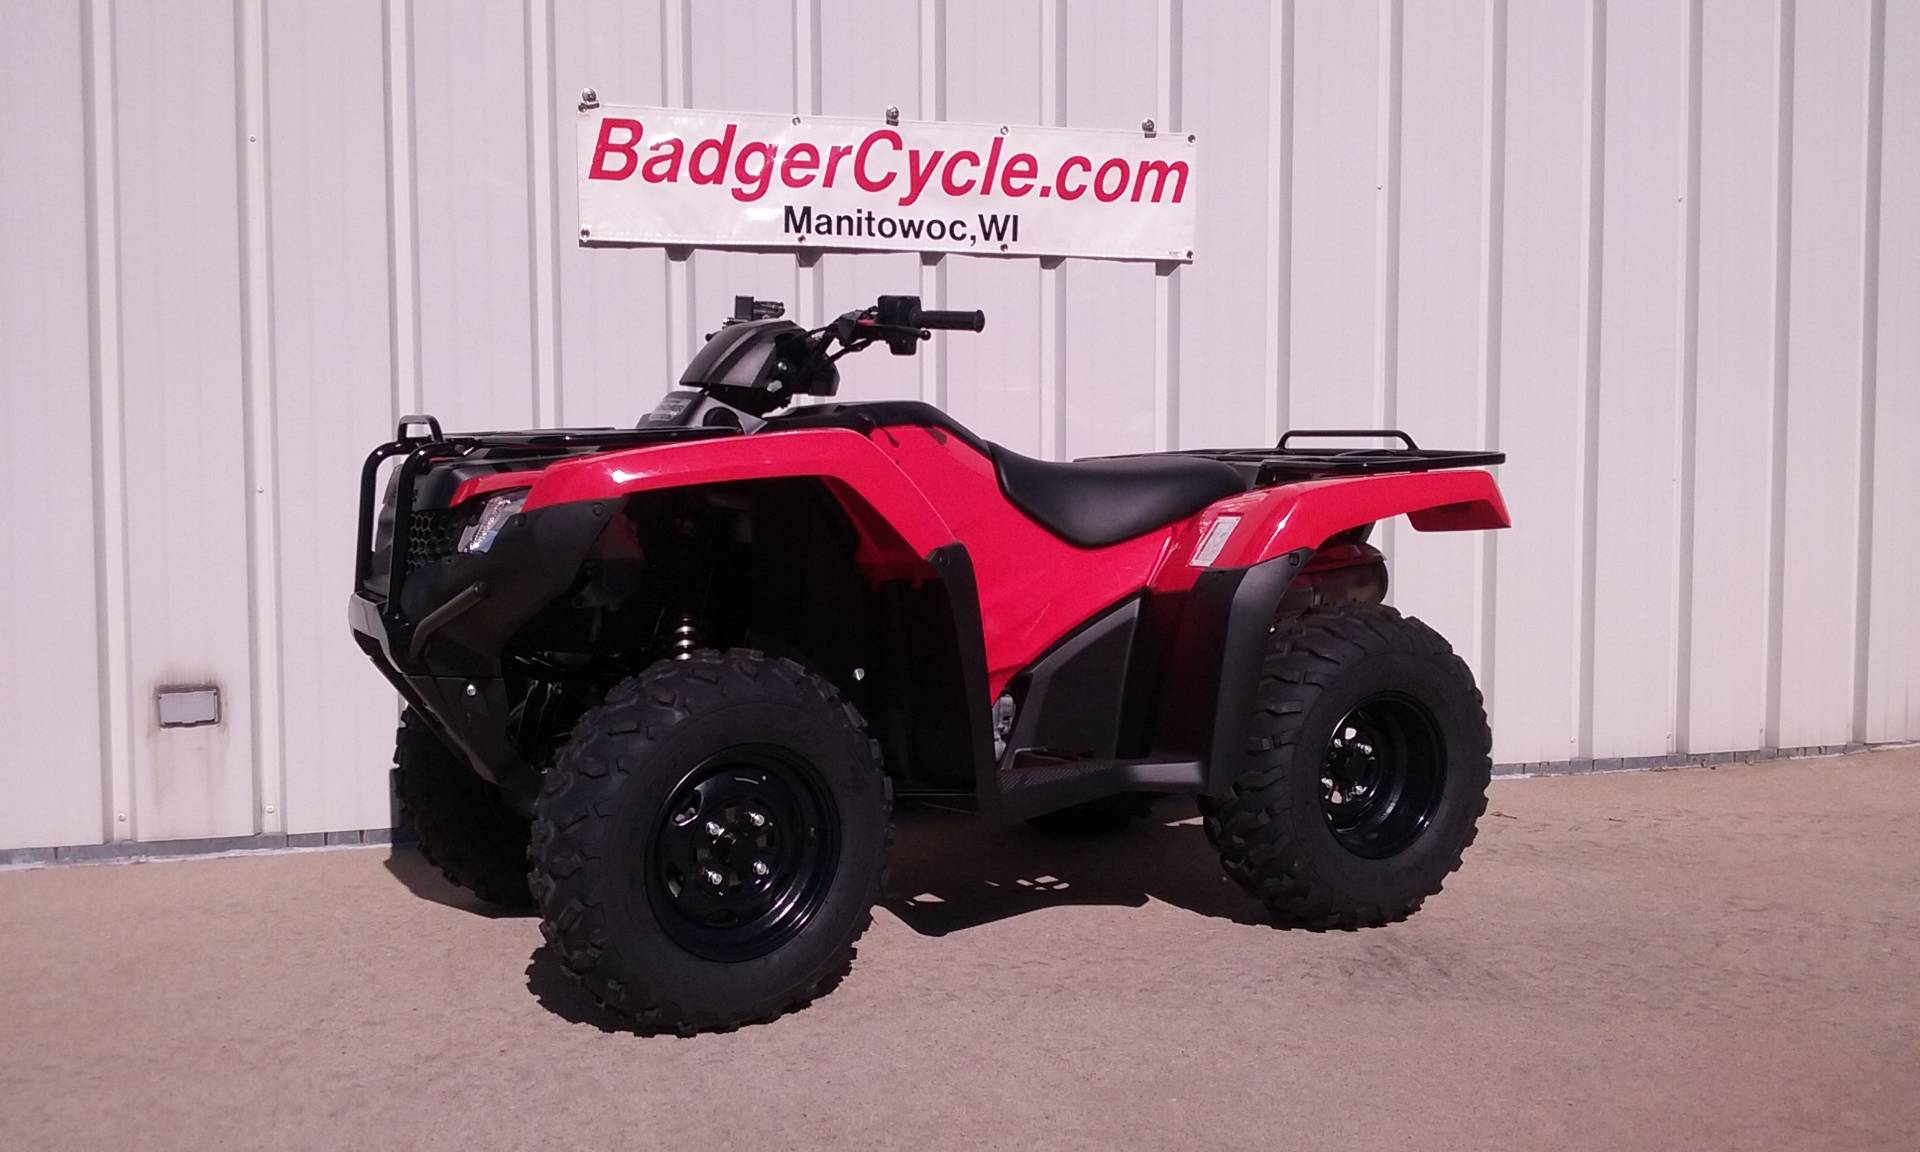 2019 Honda FourTrax Rancher 4x4 ES in Manitowoc, Wisconsin - Photo 1